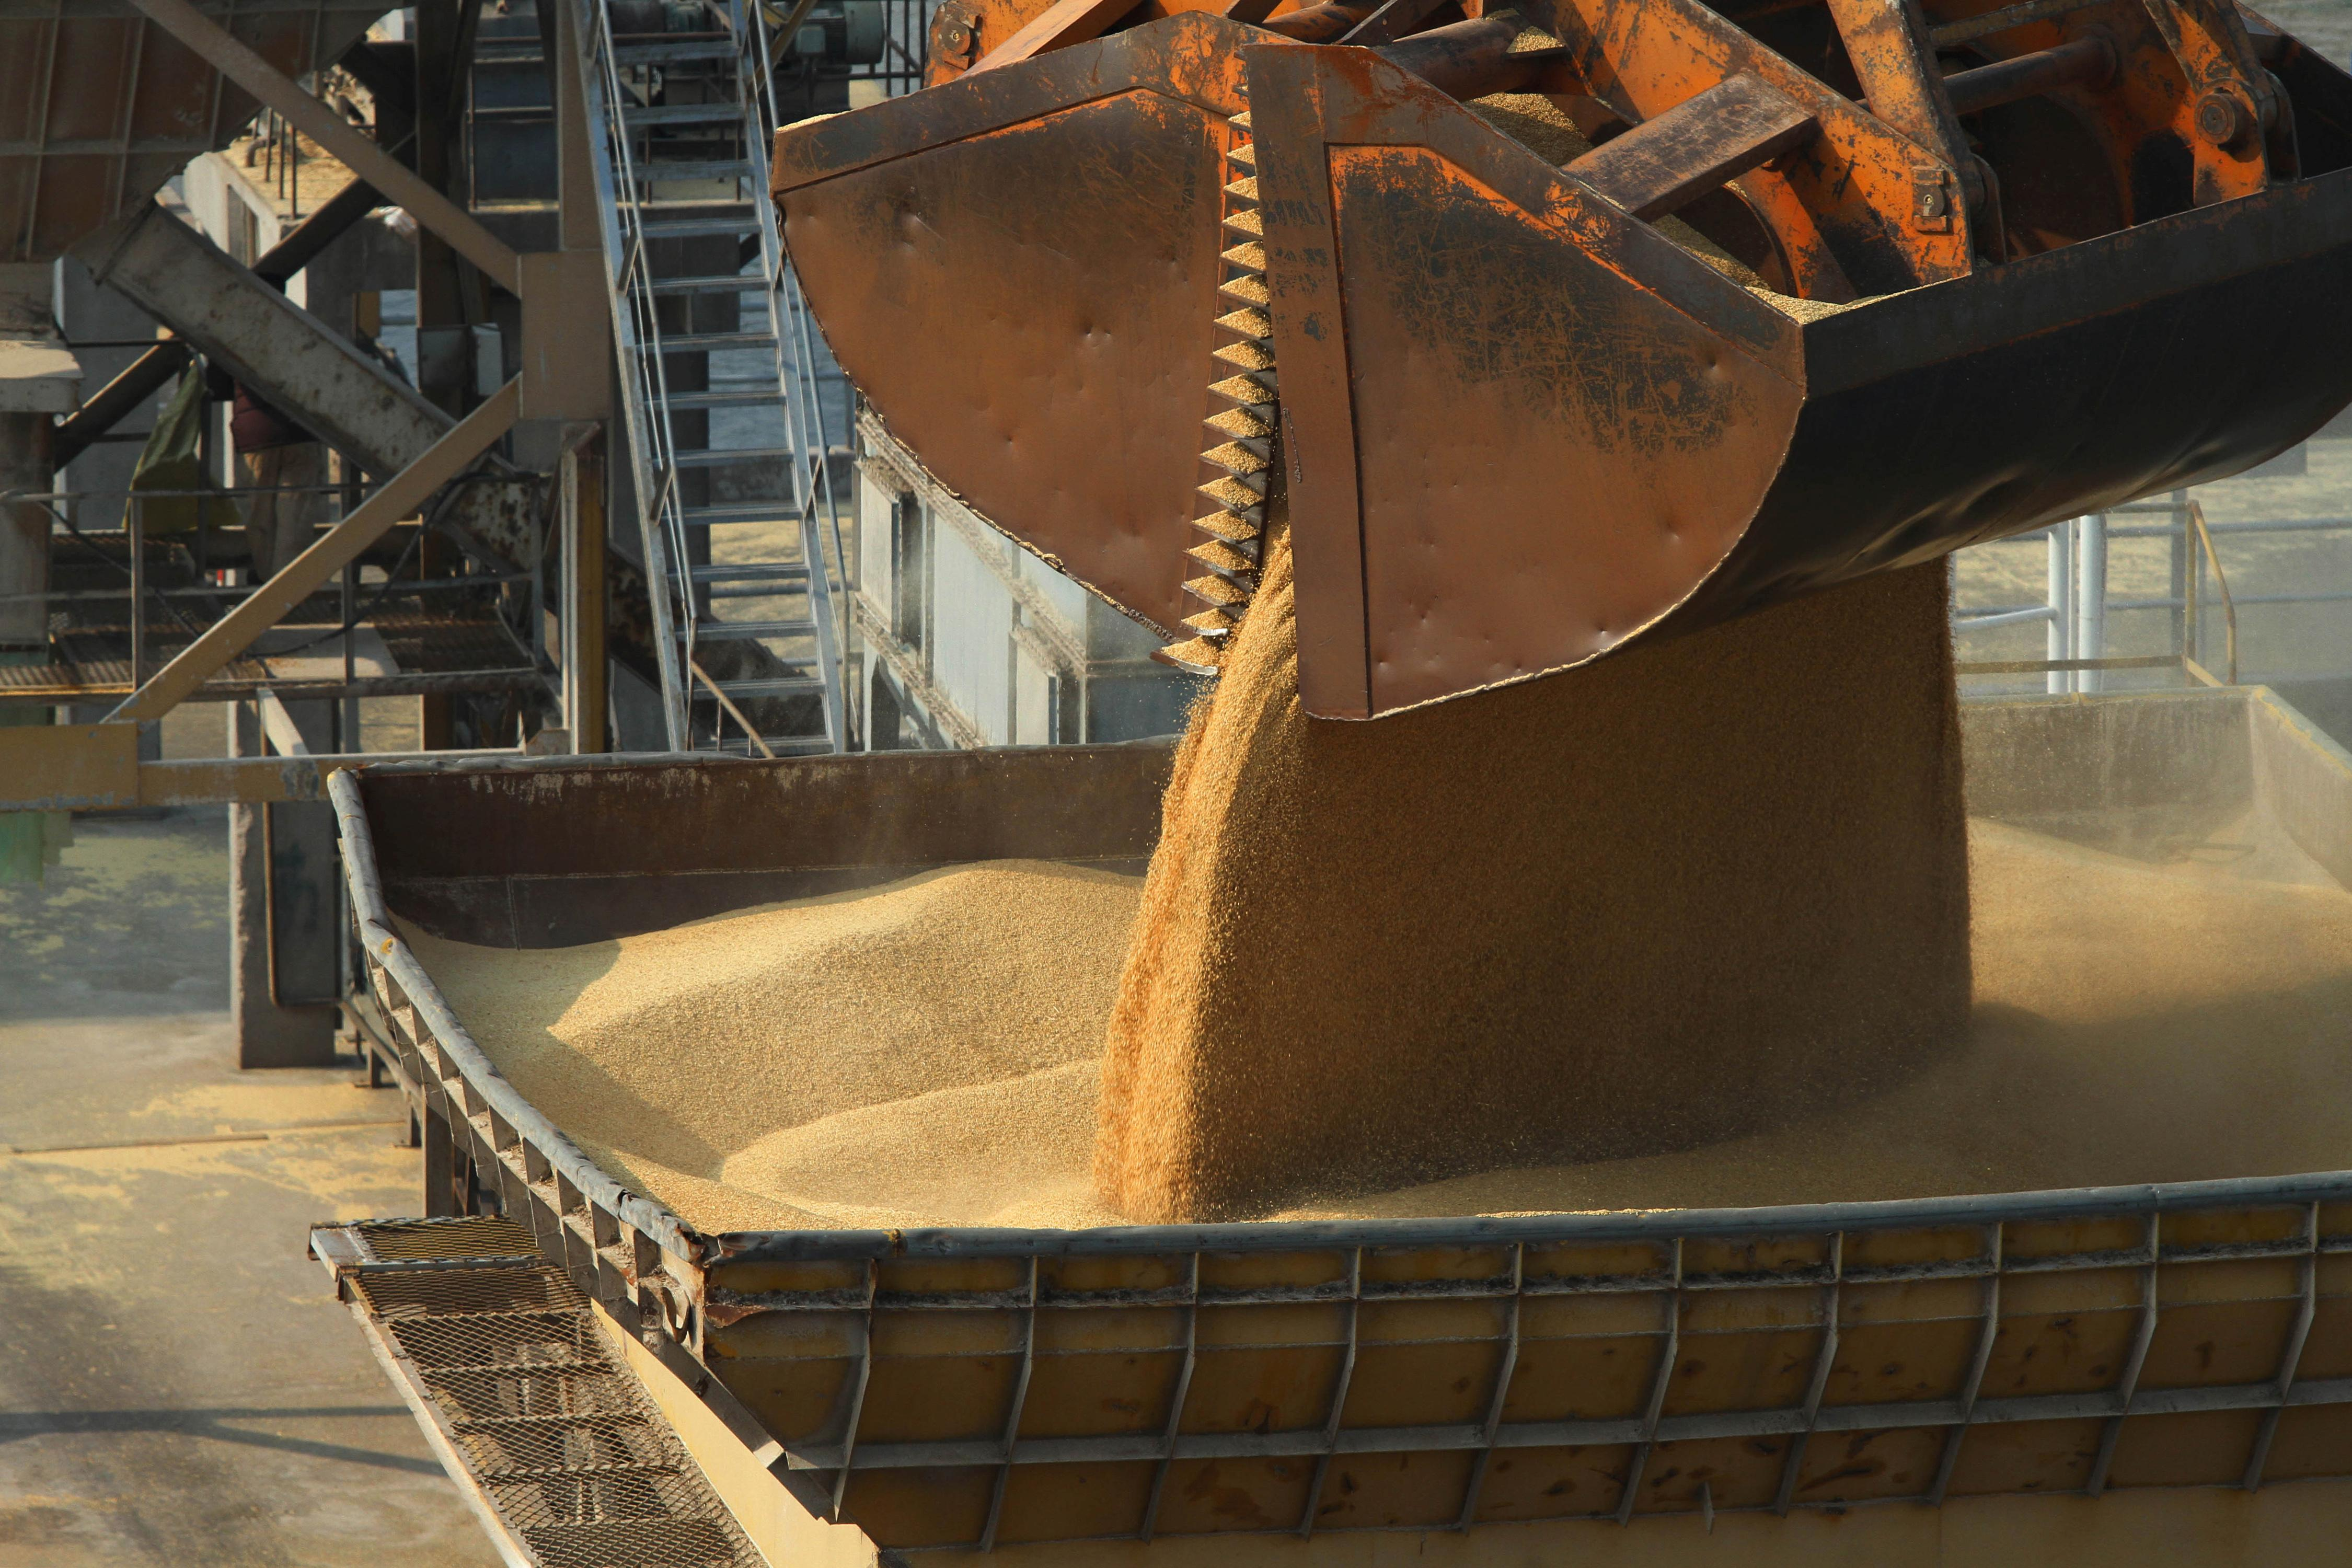 Australia expects China to keep barley, COVID-19 issues separate